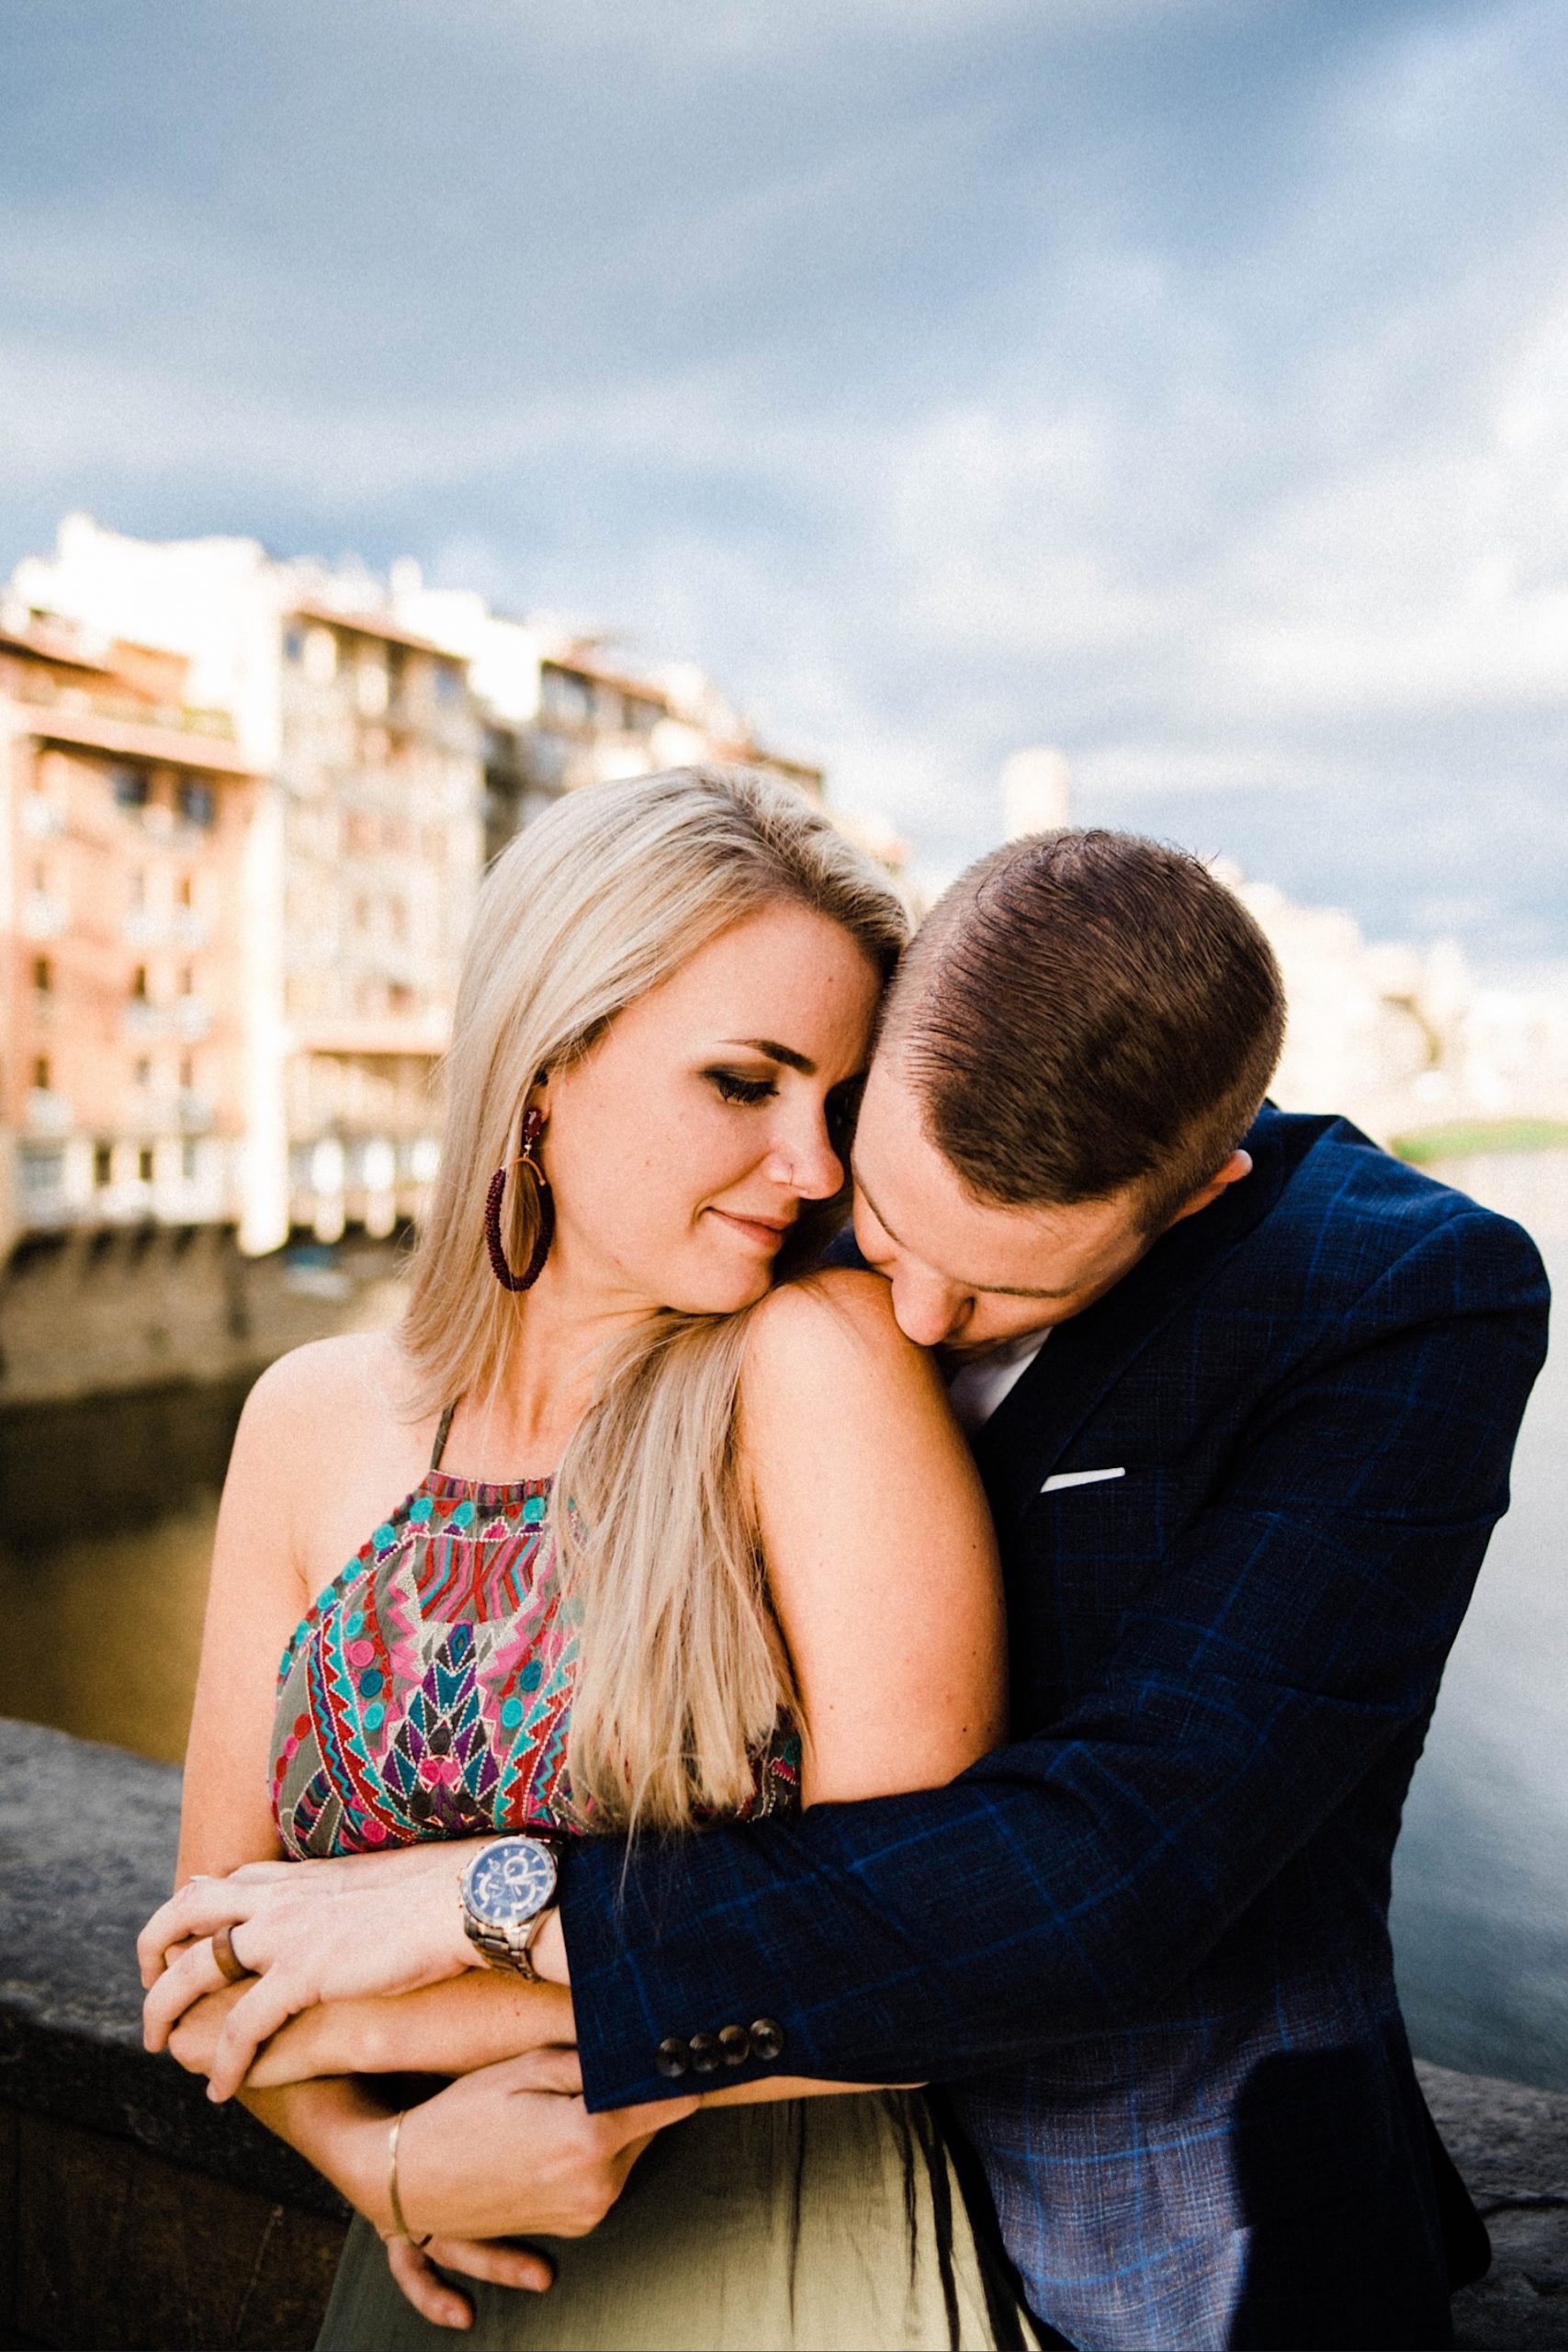 A couple shares an intimate moment, cuddling and holding hands, on the Ponte Vecchio in Florence.